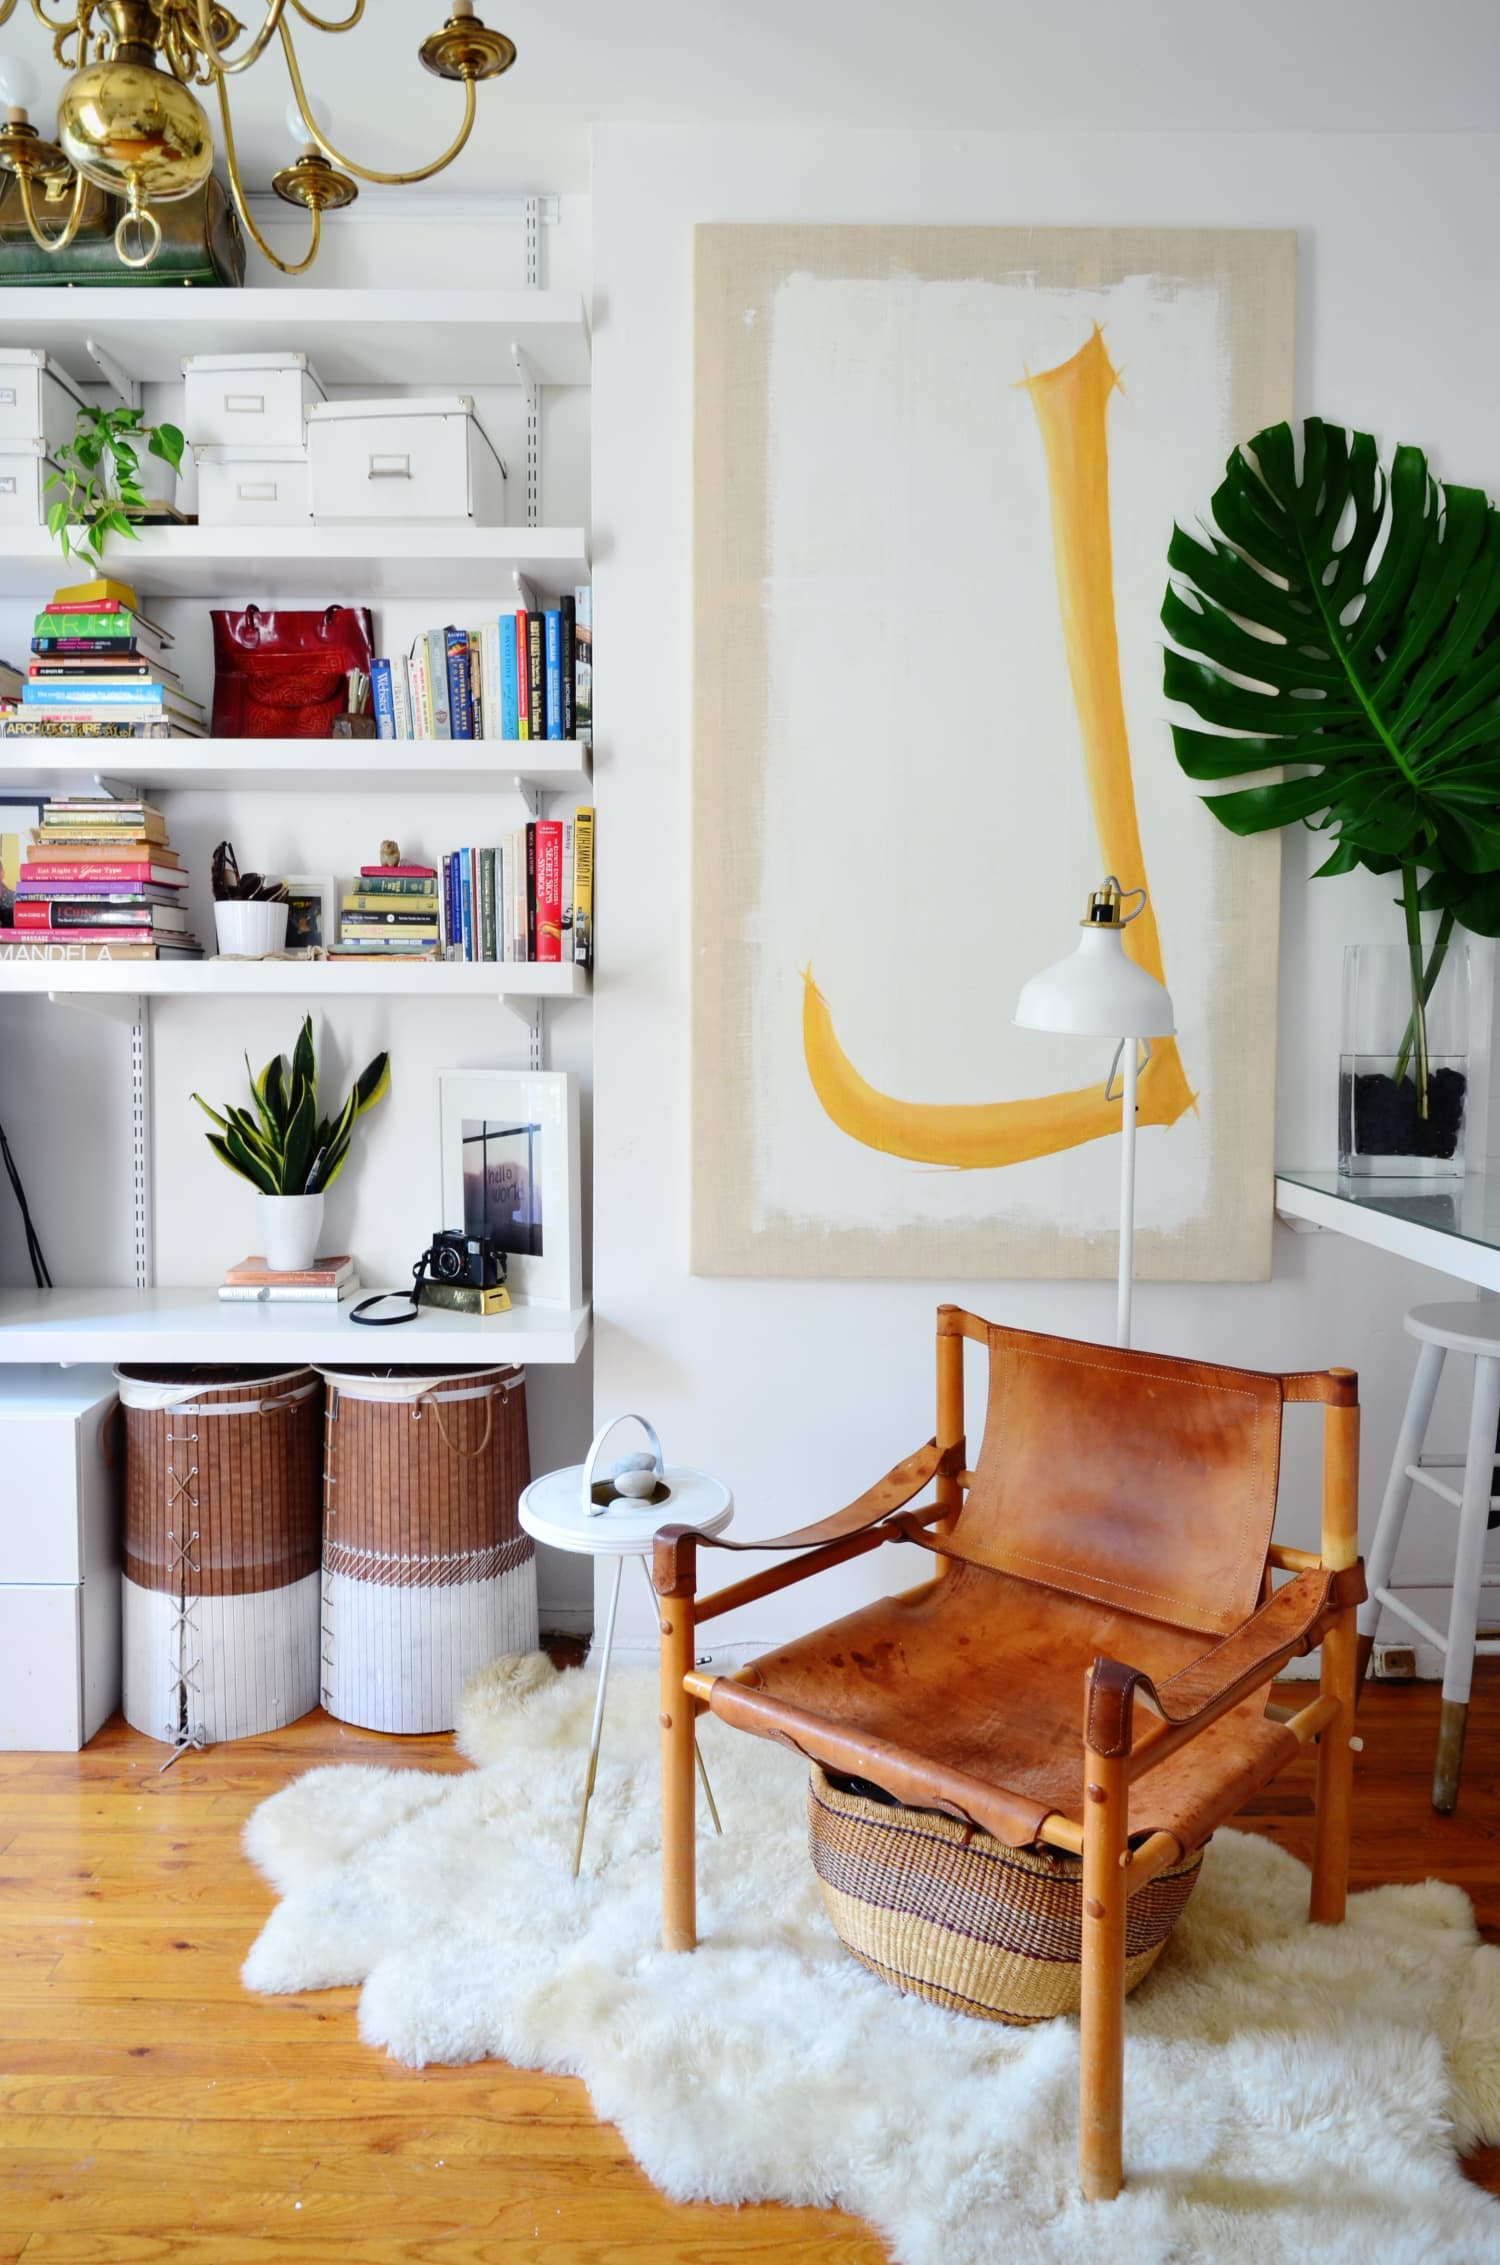 Small Living Room Decoration 6 Smart Ideas To Make It: 9 Smart Design Ideas For Your Studio Apartment